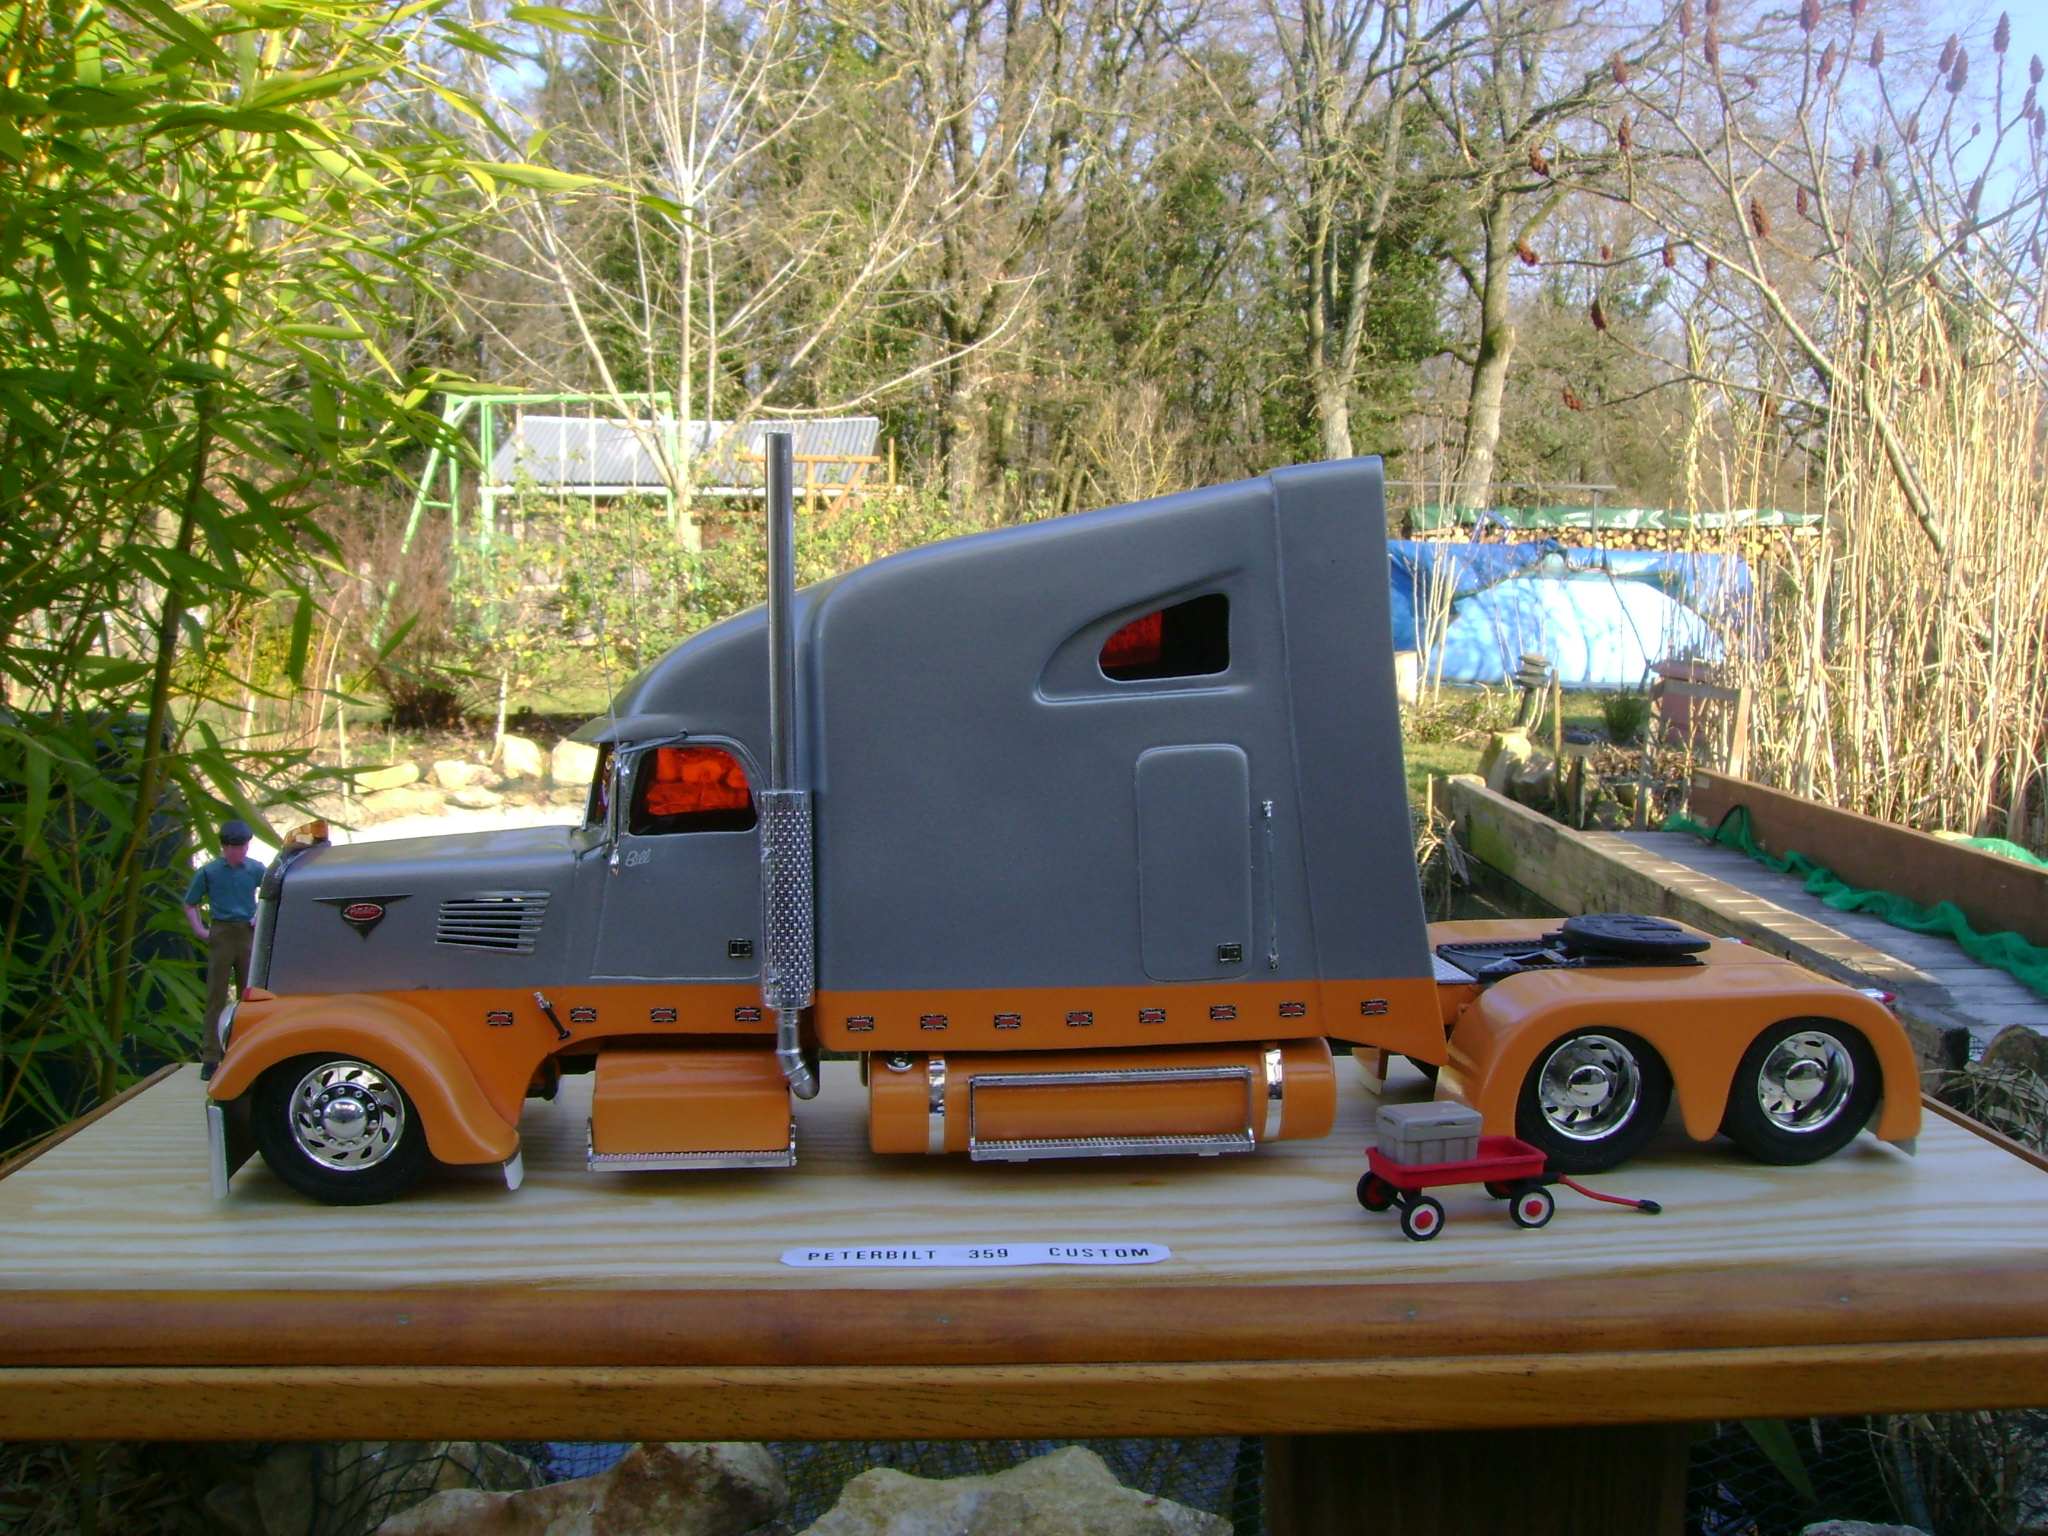 big rc semi truck kit with Awesome Model Big Rigs on 2014 5060 Ton Rotator With Jfb in addition Wordless Wednesday Raised Vs Stock Hummer H2 together with Truck Model Kiwimill News as well Truck Model Kiwimill News further Index php.